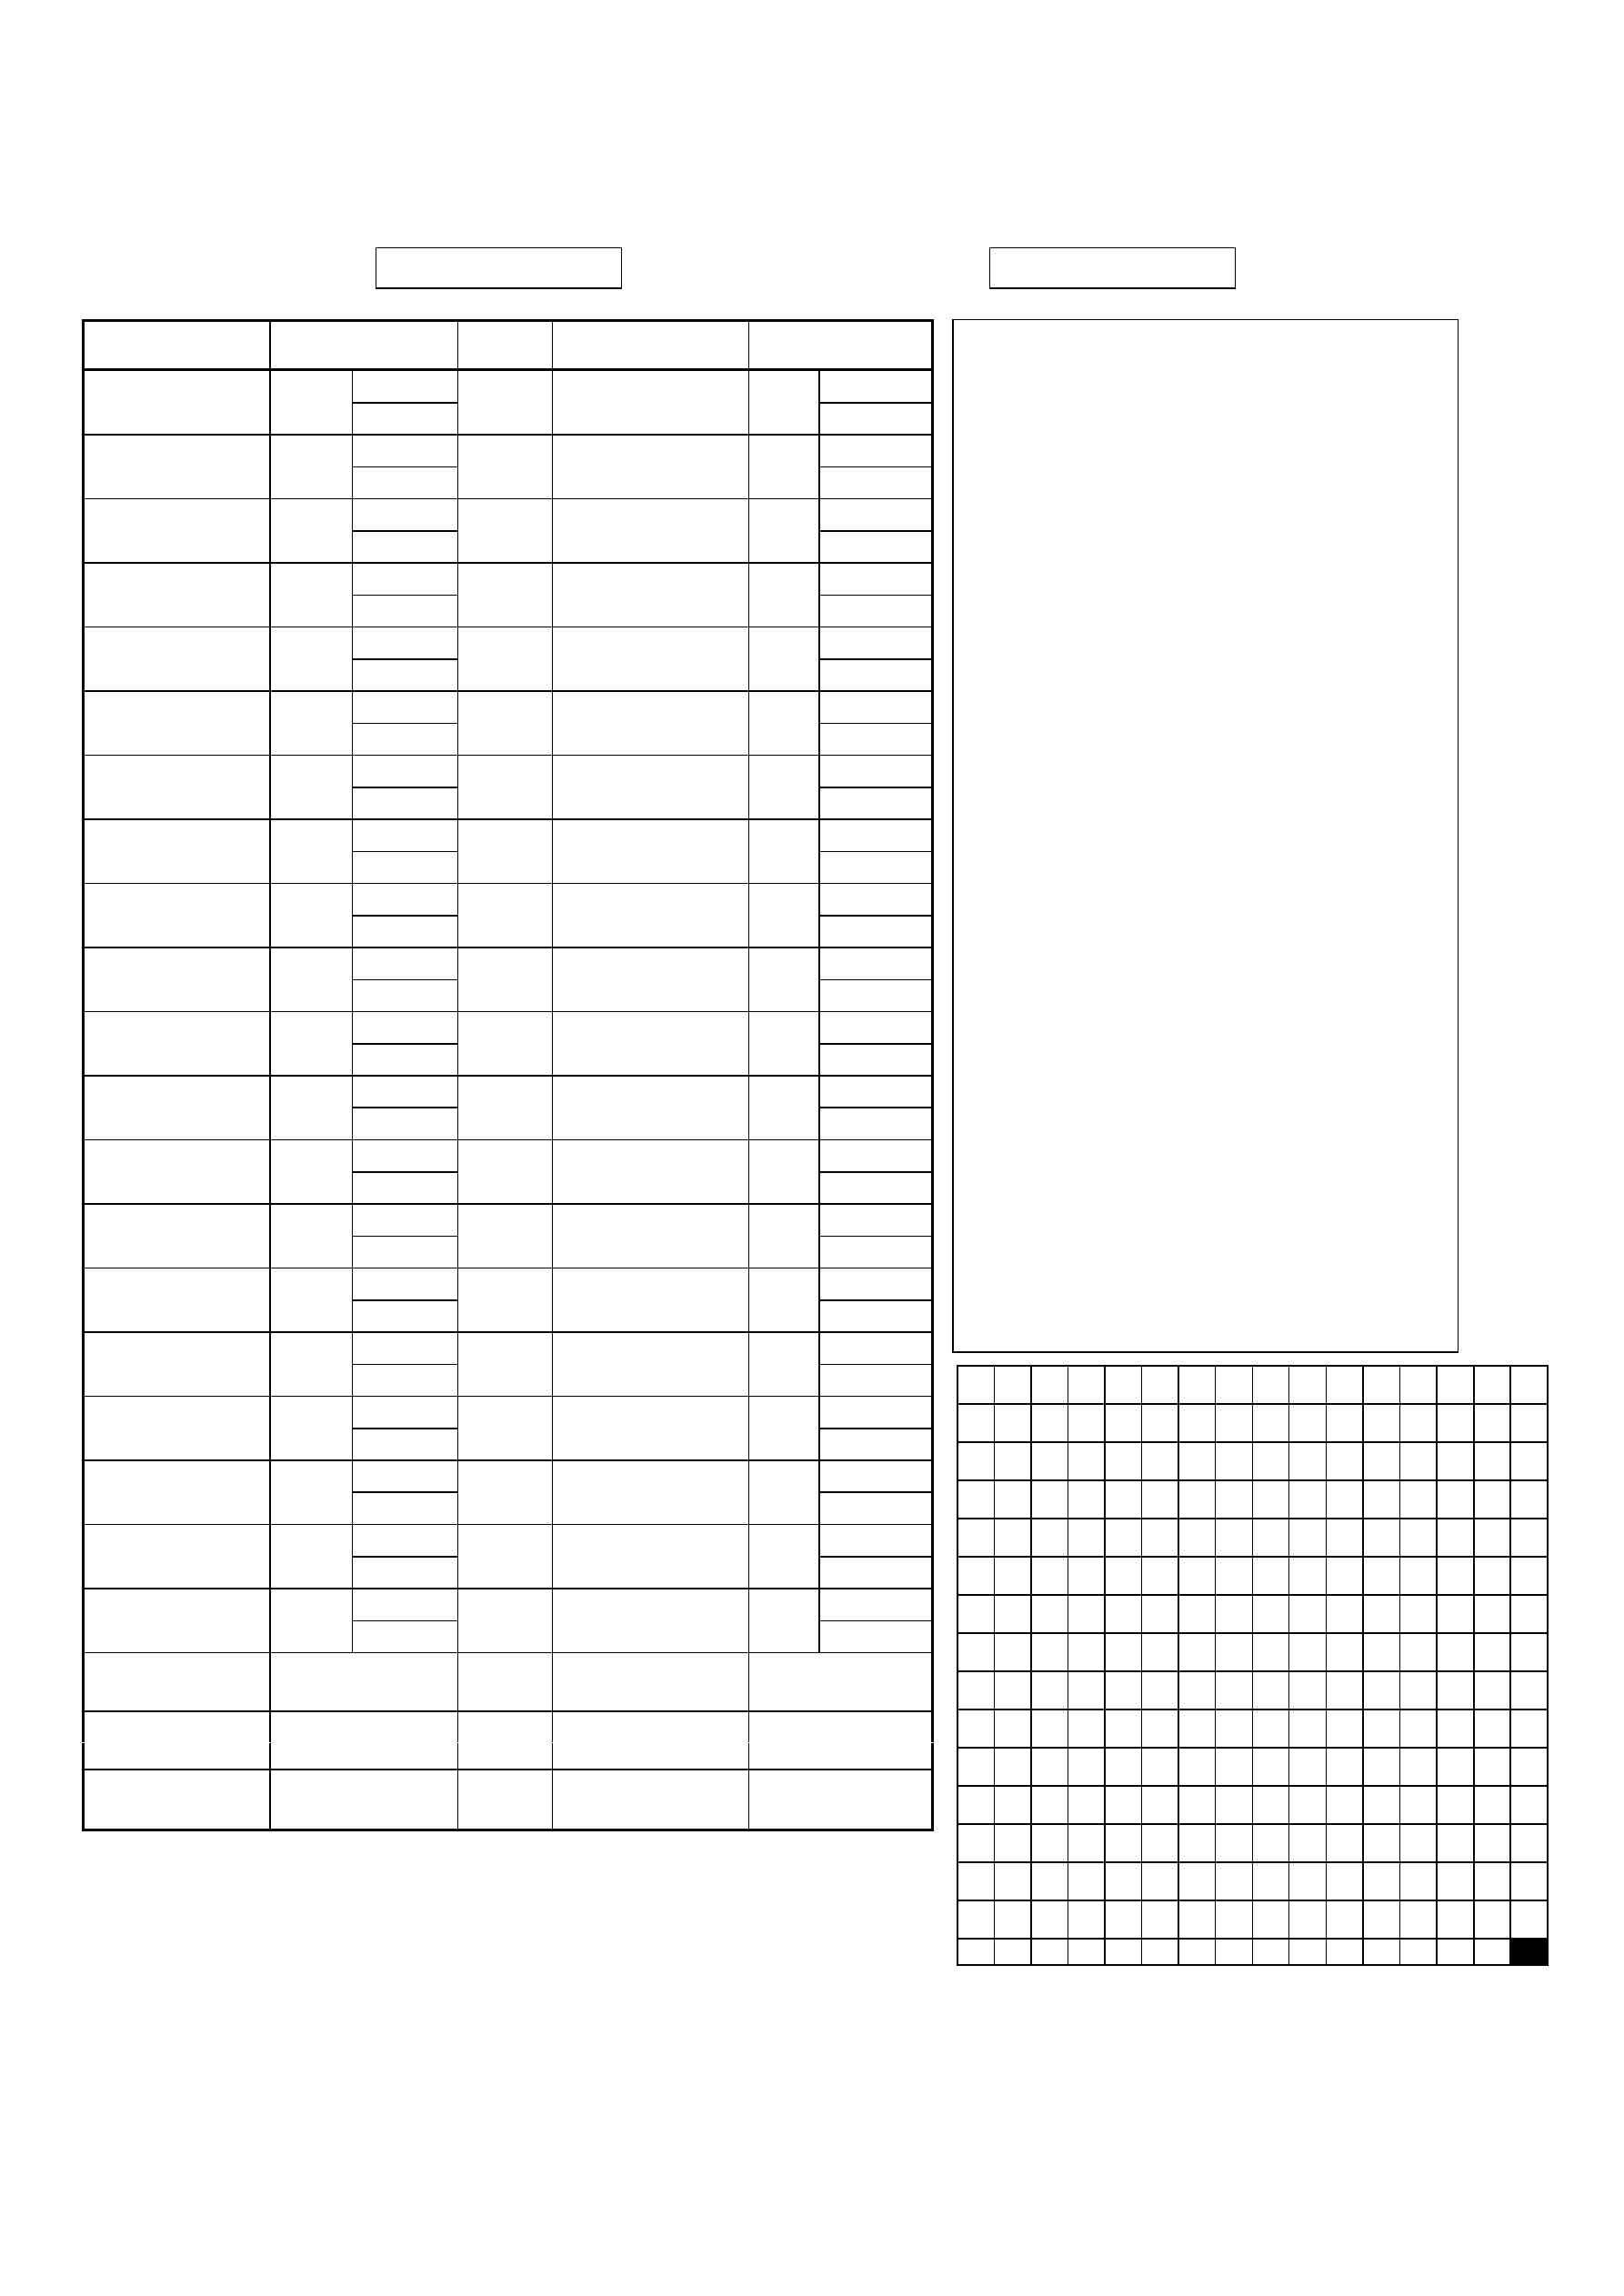 Scrabble Score Sheet Sample Free Download – Sample Scrabble Score Sheet